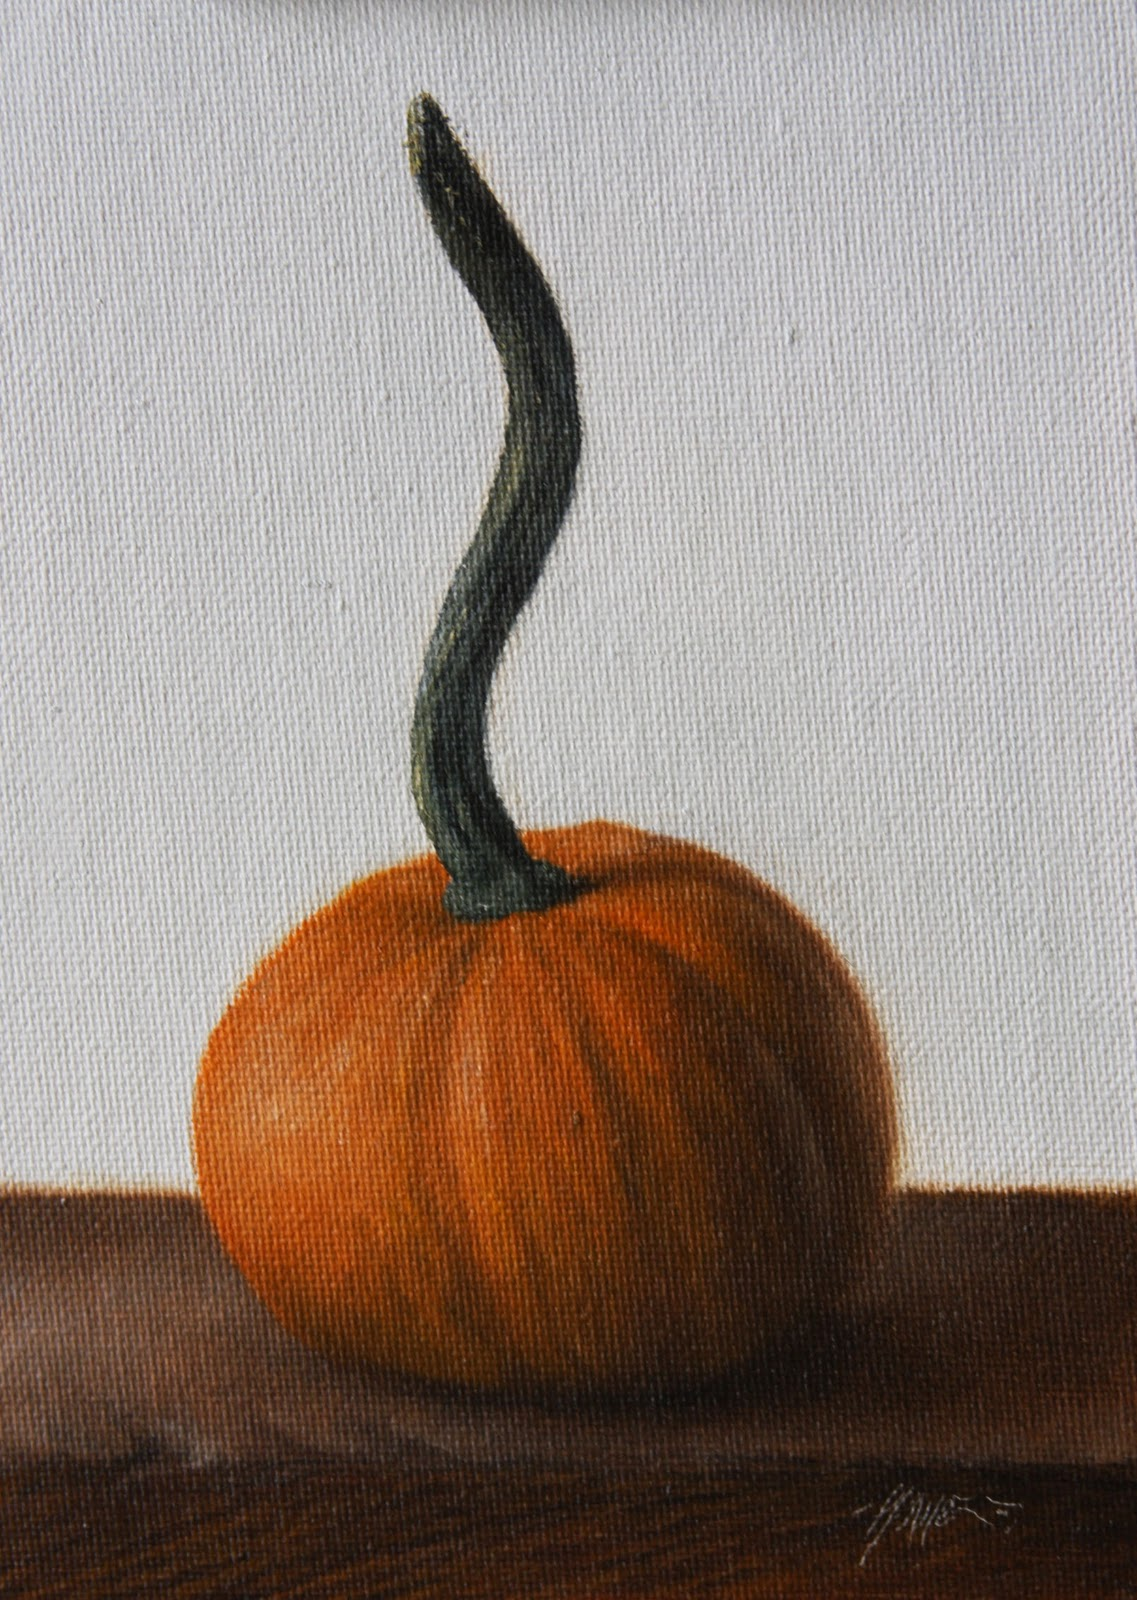 """Pumpkin Stem"" original fine art by Jonathan Aller"